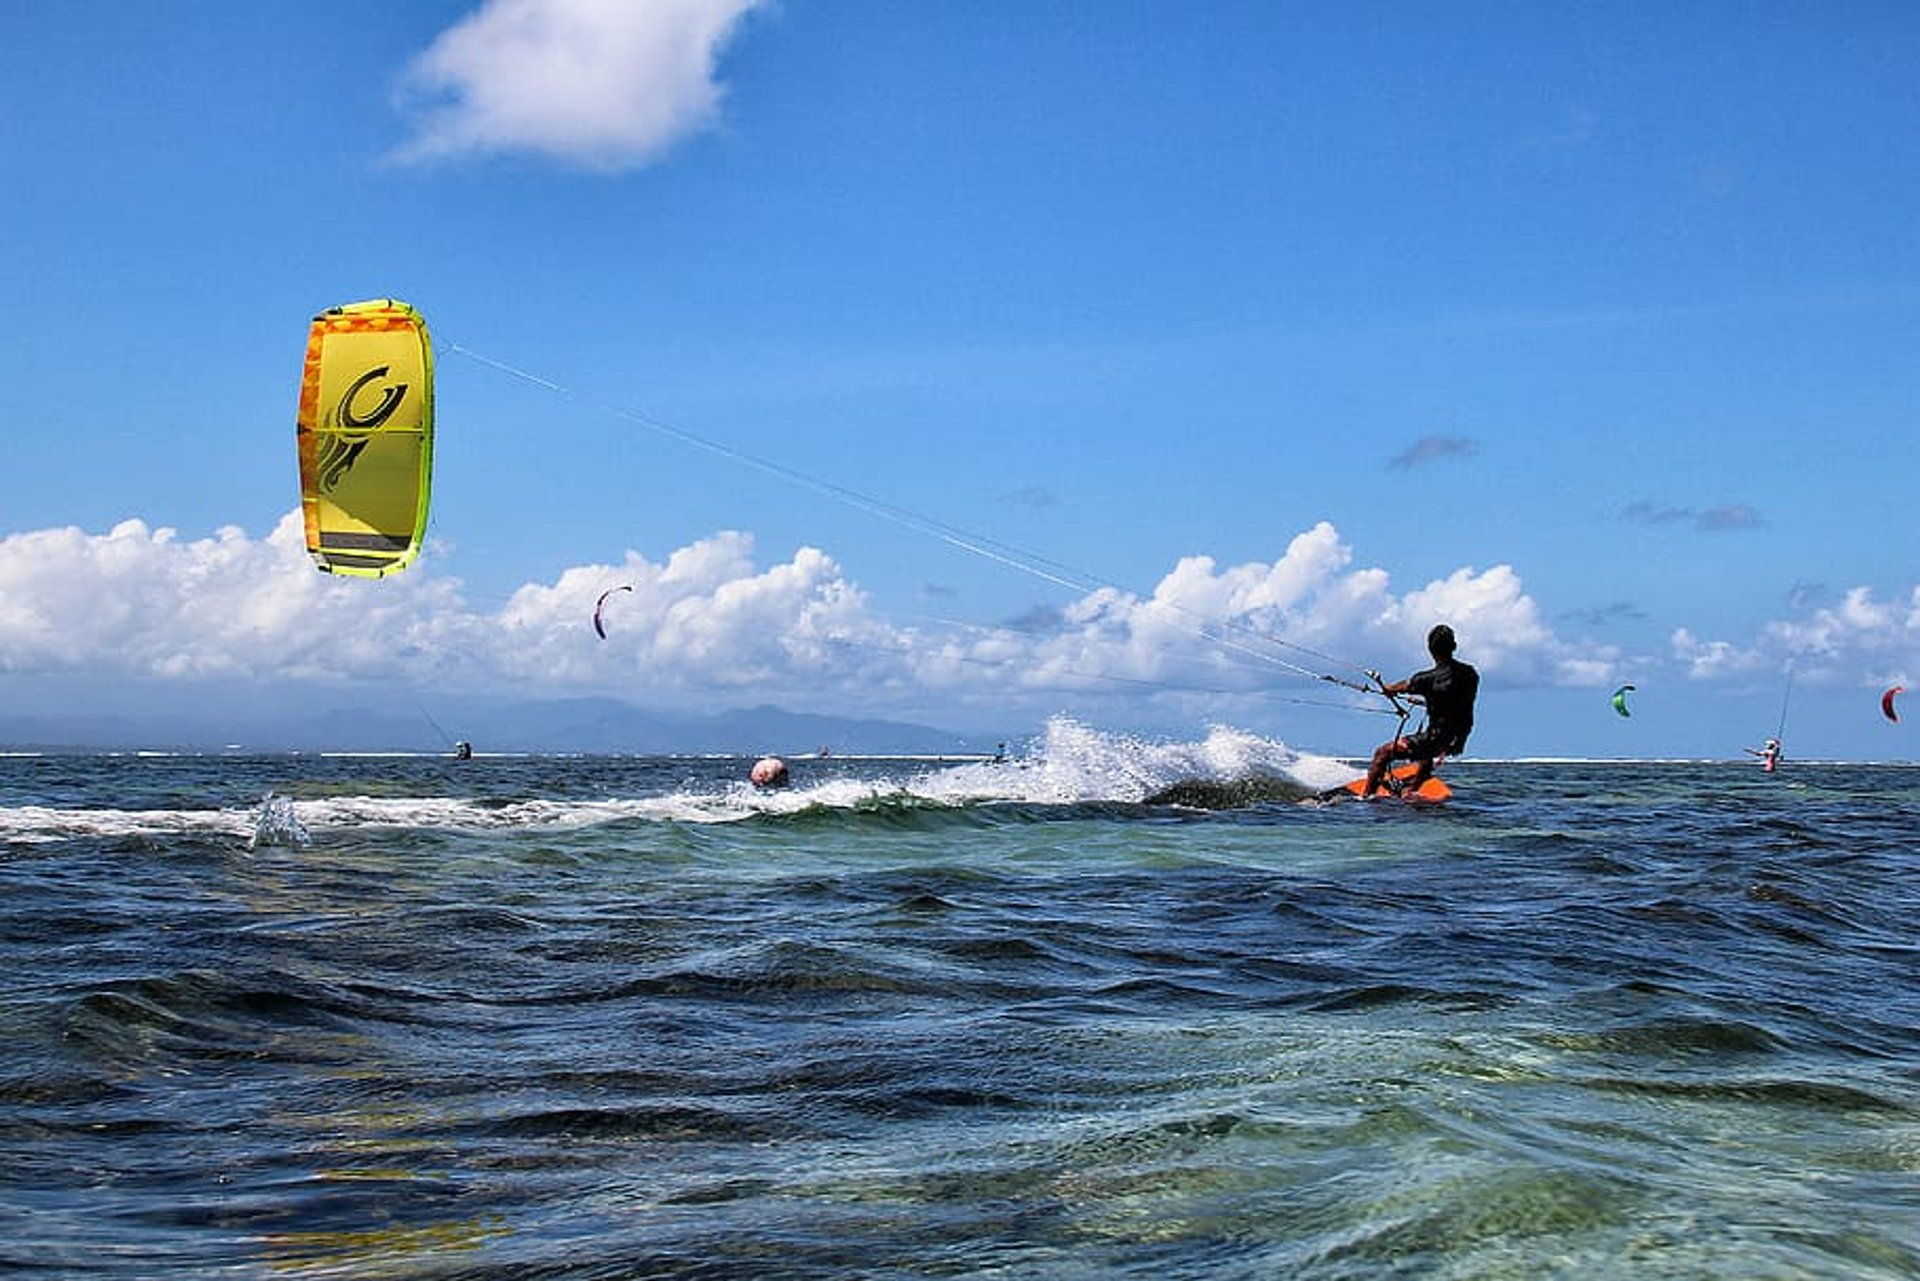 Kitesurfing and Windsurfing in Bali 2020 - Best Time